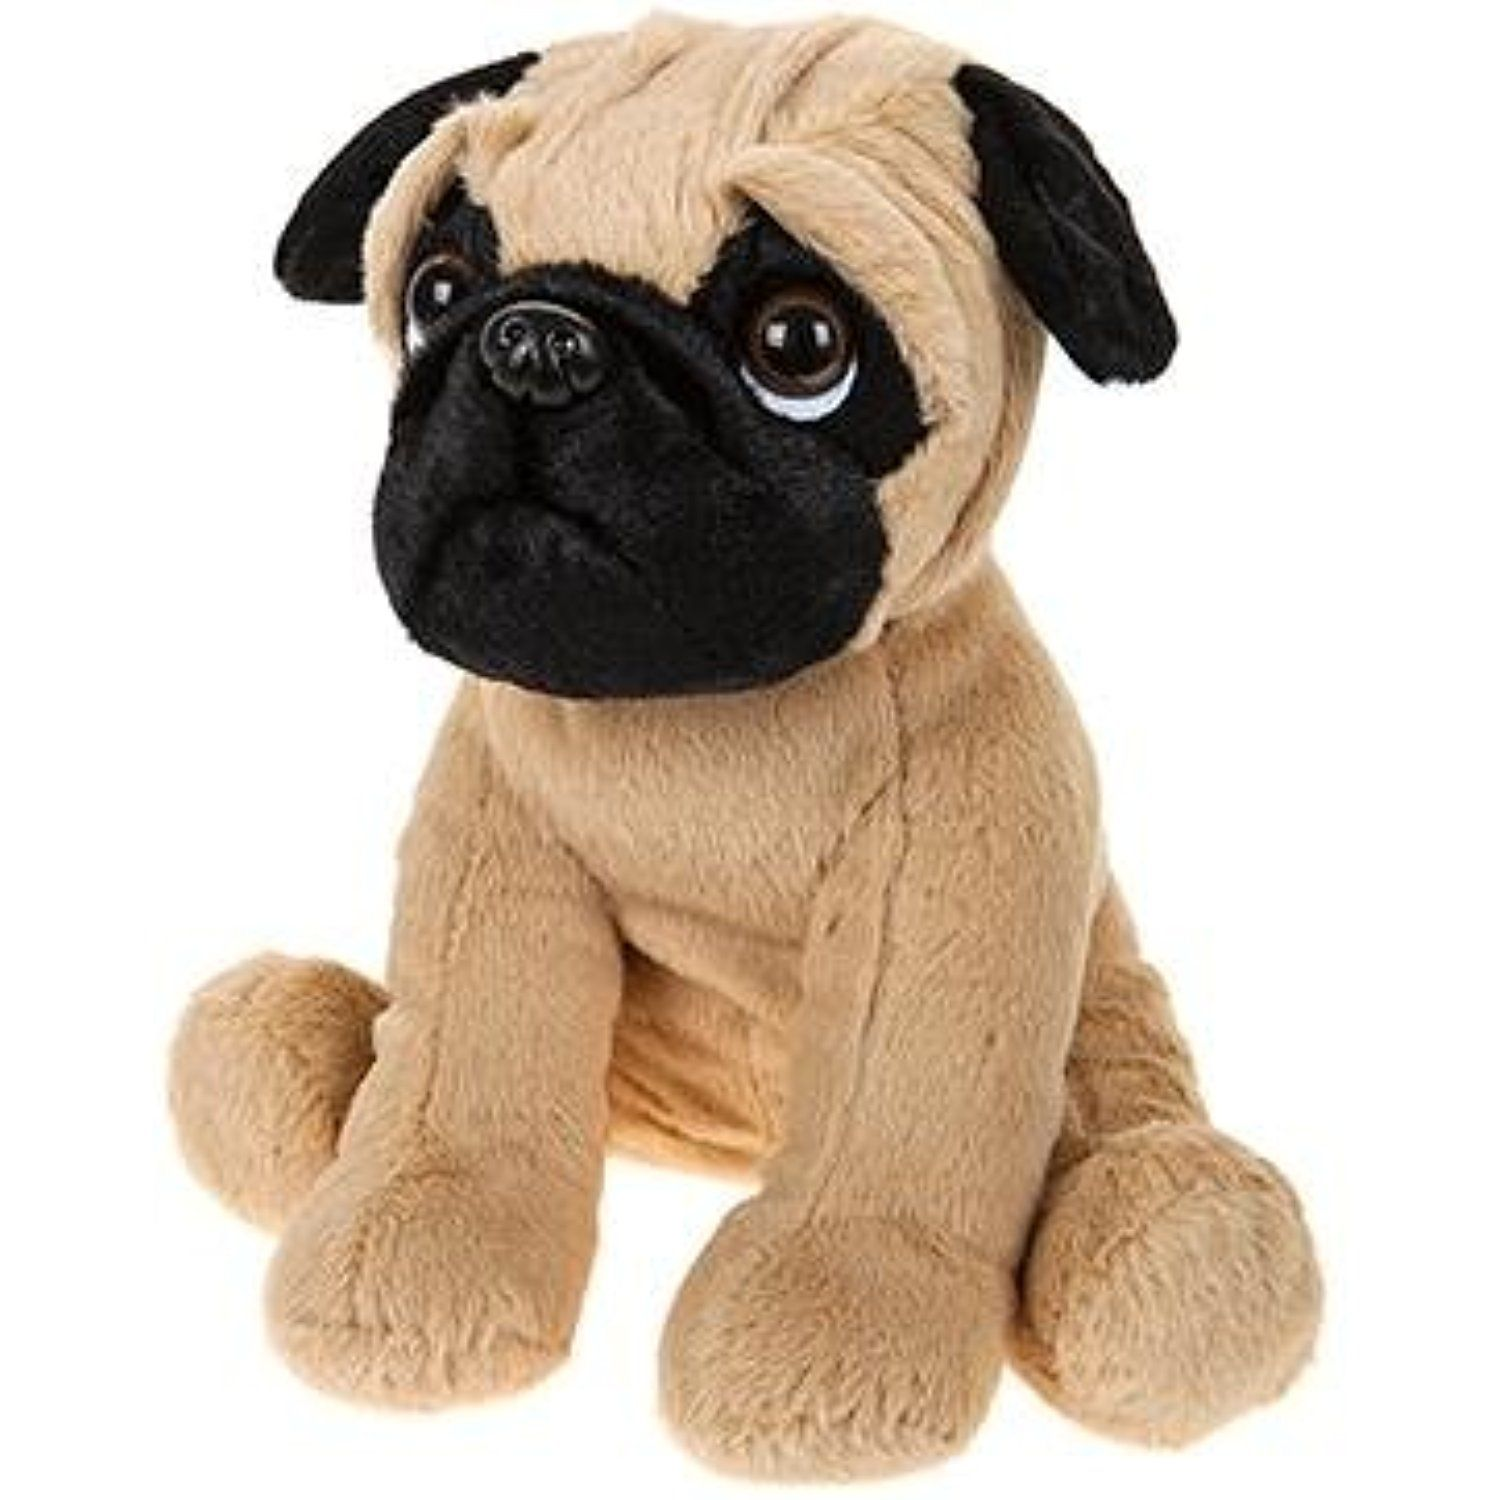 30cm Sitting Pug Dog Plush Toy Soft Toys Want To Know More